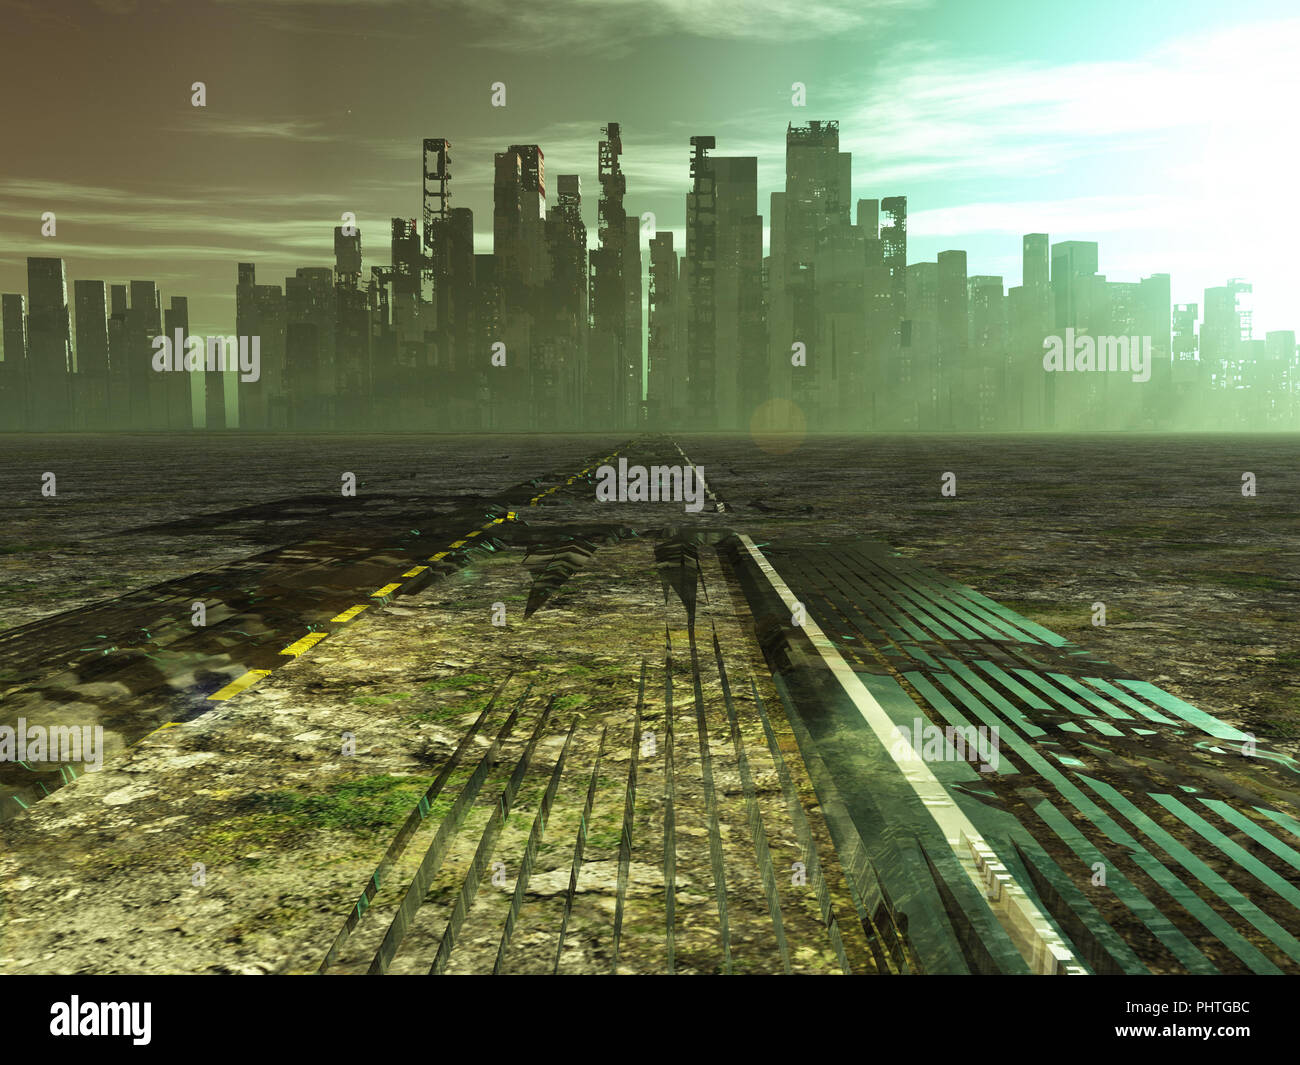 Weathered road leads into abandoned city - Stock Image